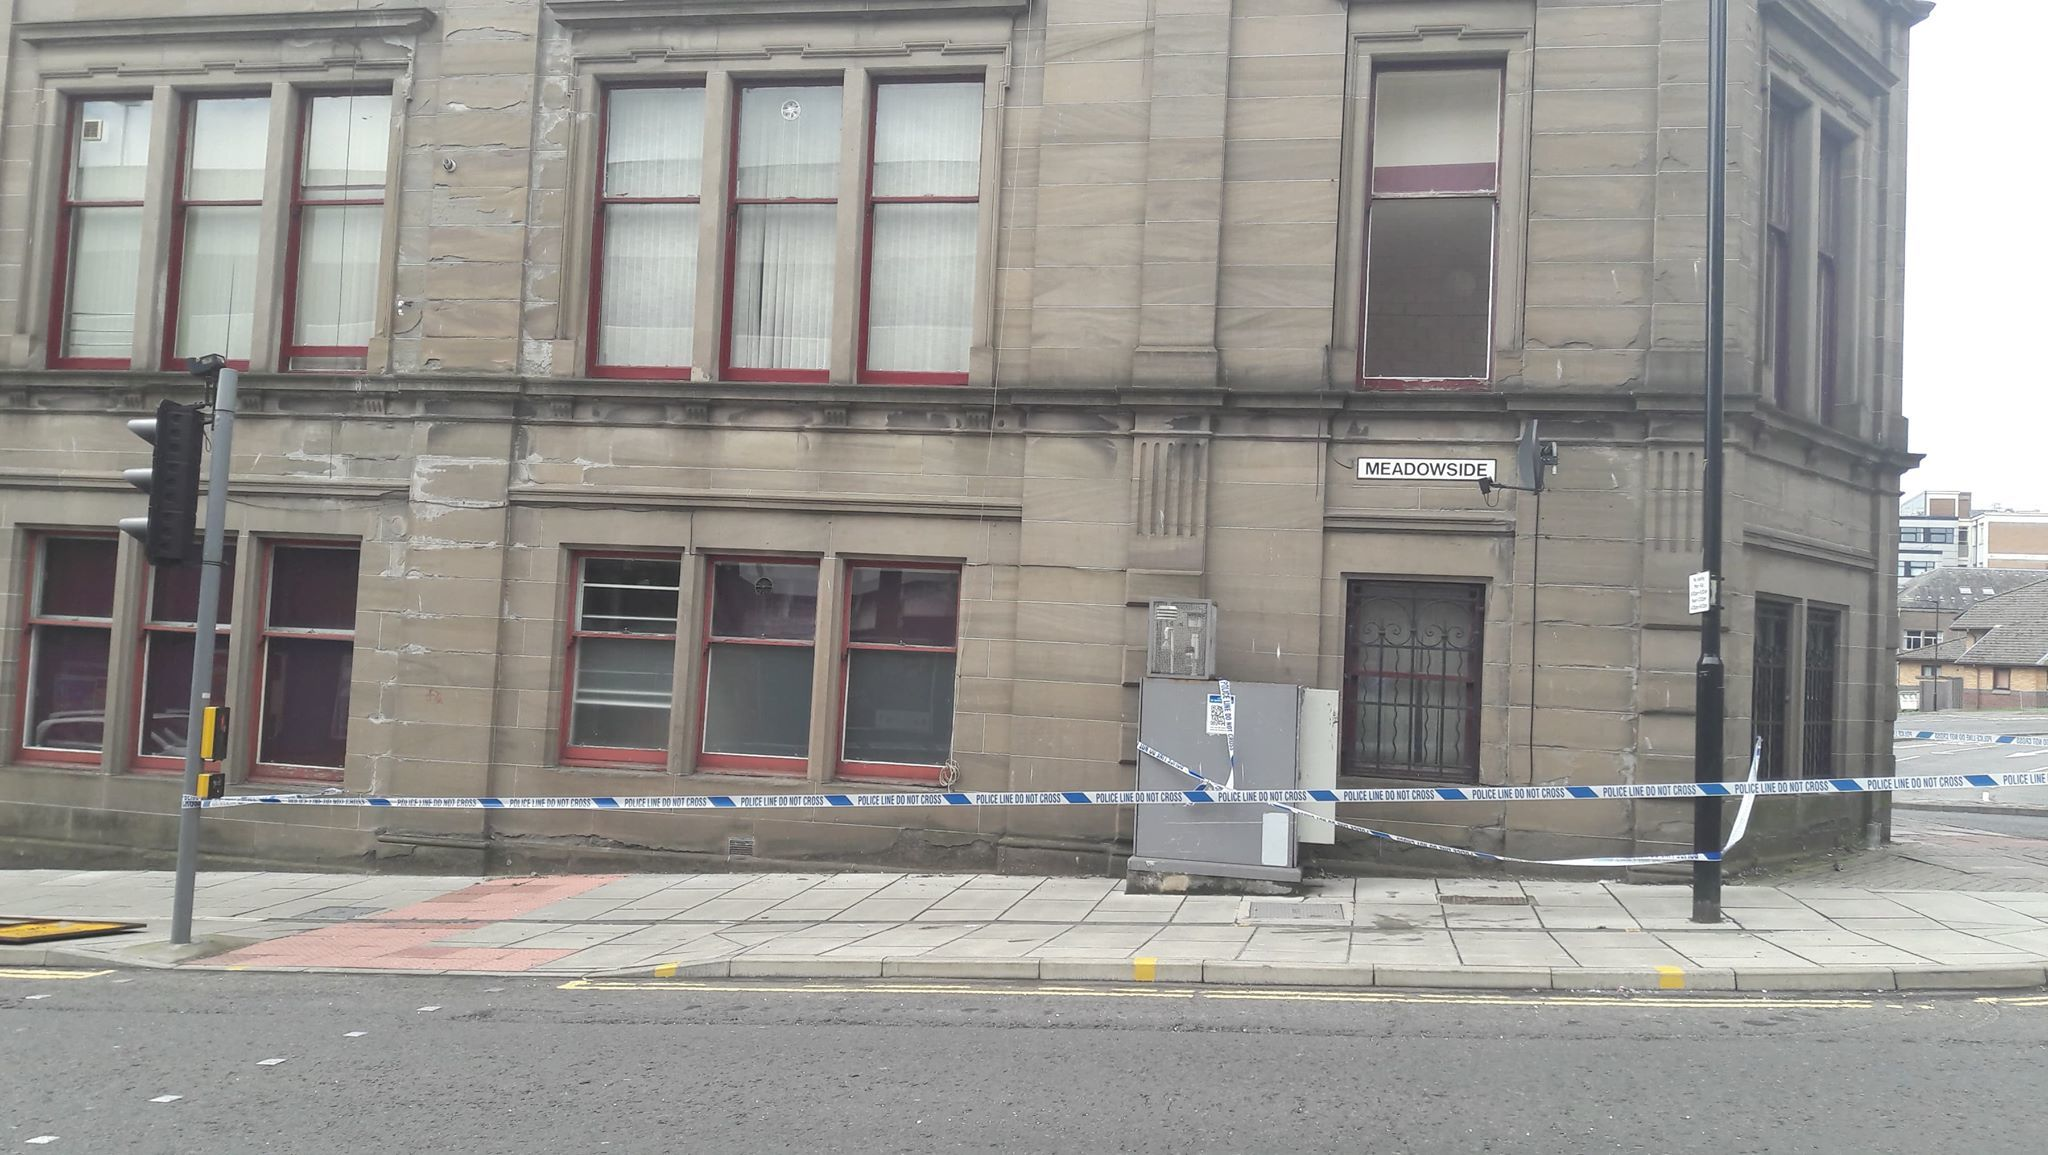 The cordoned-off area of Meadowside.